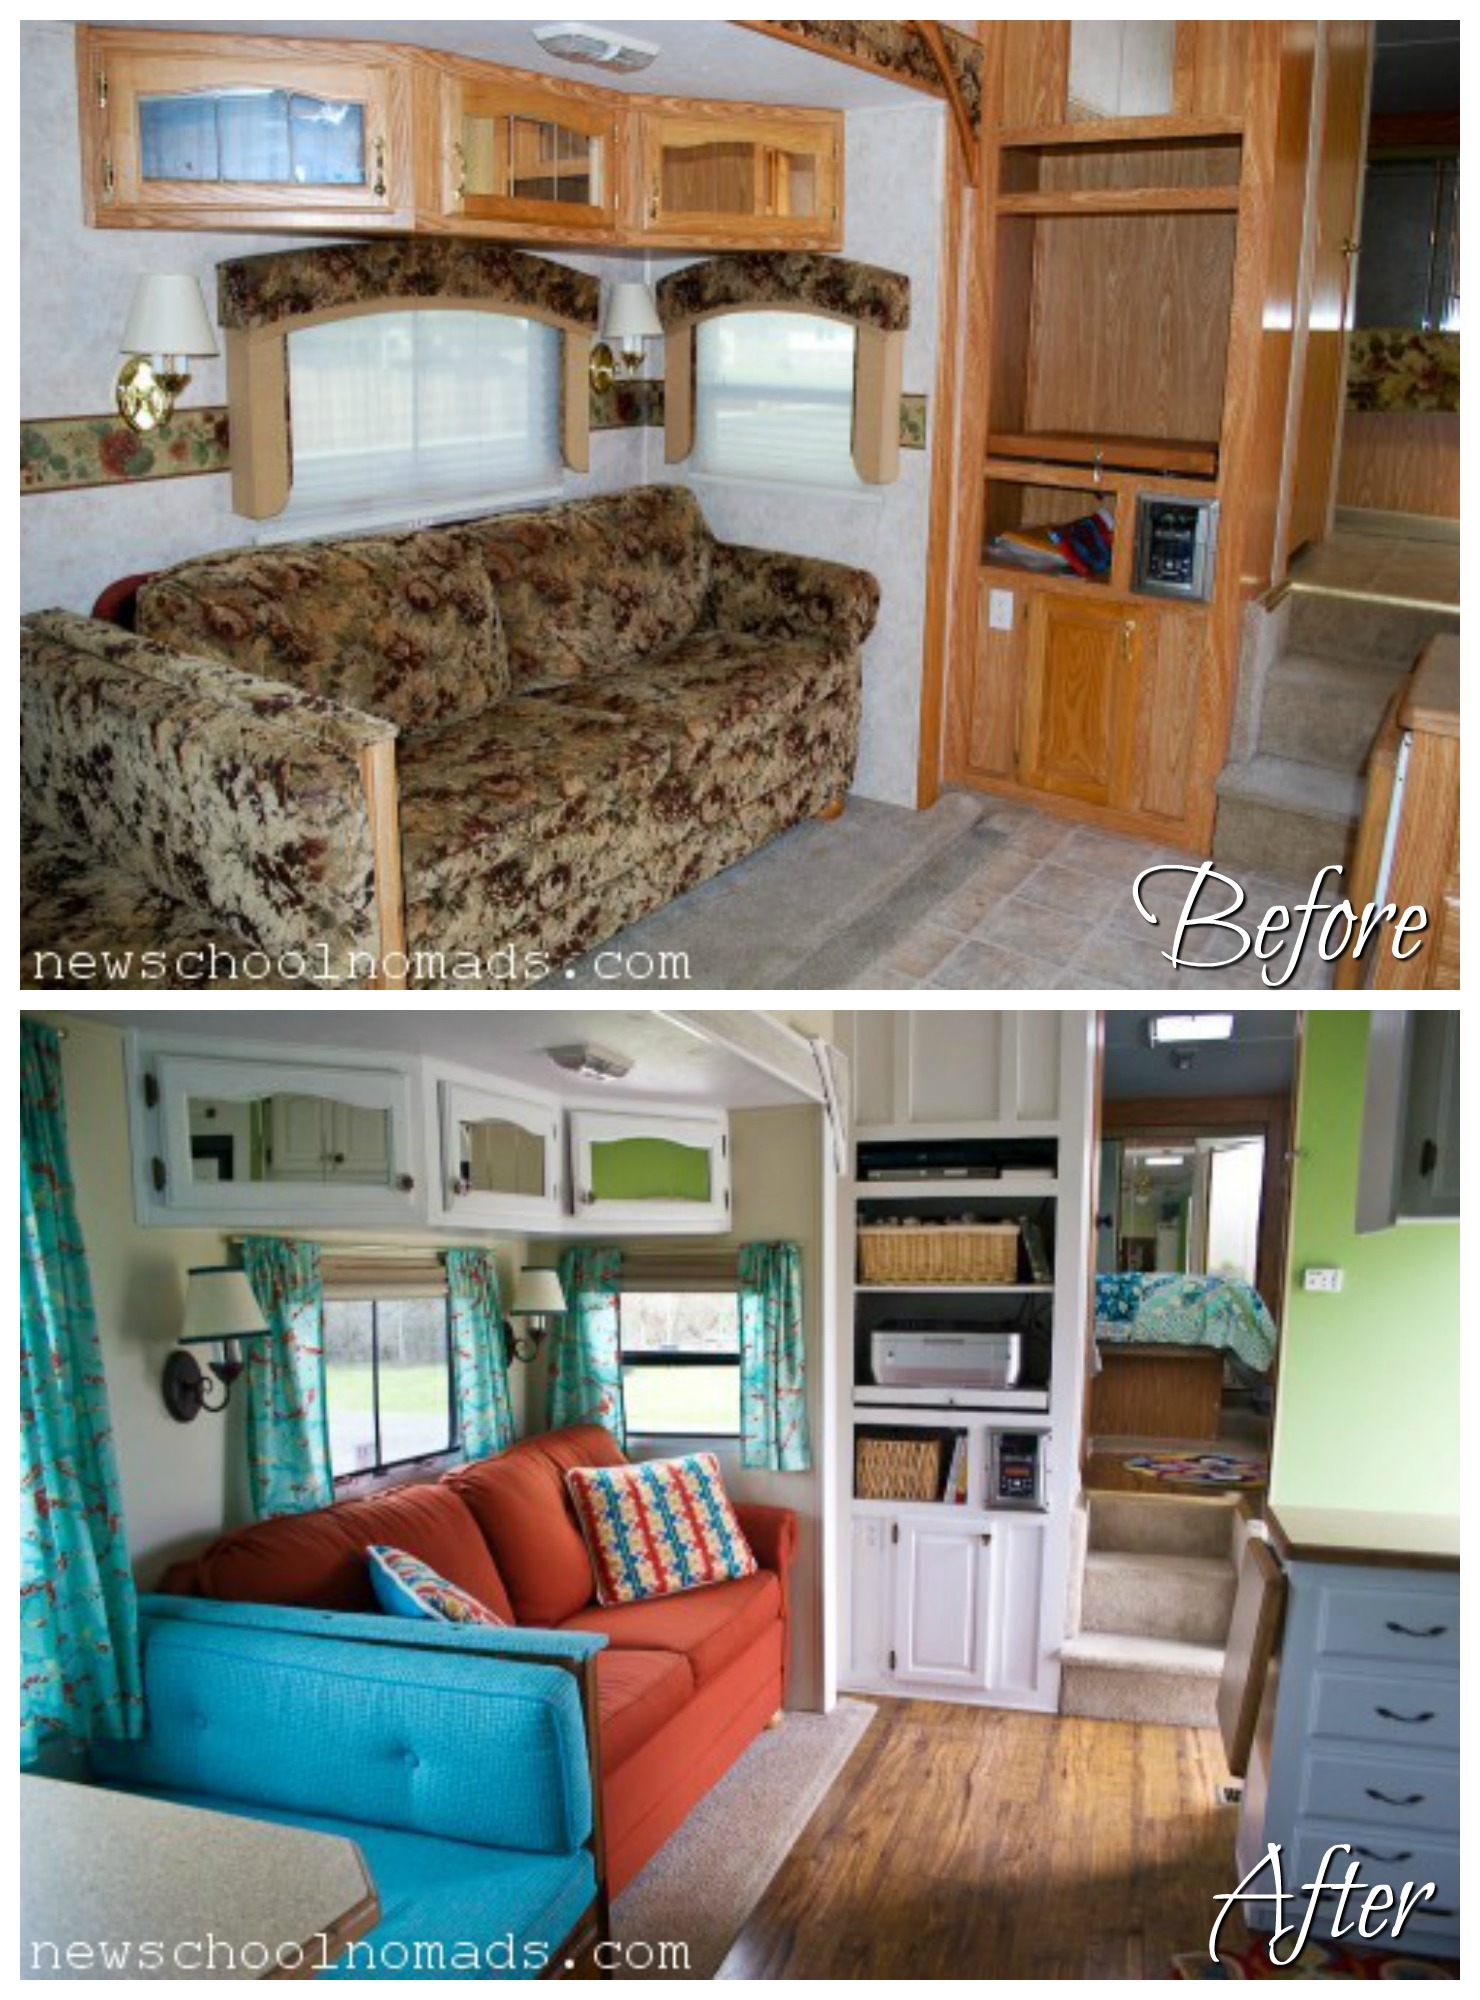 RVObsession - Fifth Wheel Renovations - Jenn and Brent from New School Nomads transformed their fifth wheel camper from dreary and brown to bright and cheerful.